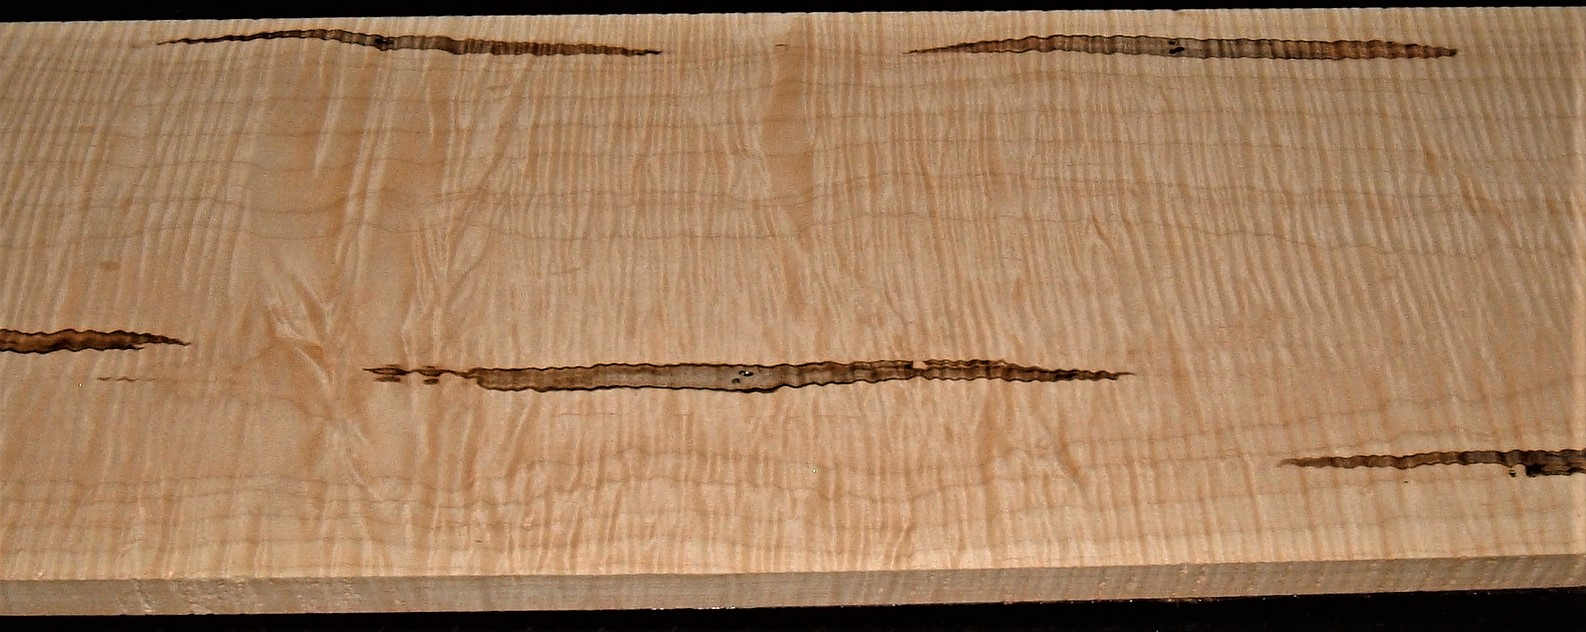 AM2011-135JJ, 7/8x10-1/4x31, Curly Ambrosia Maple